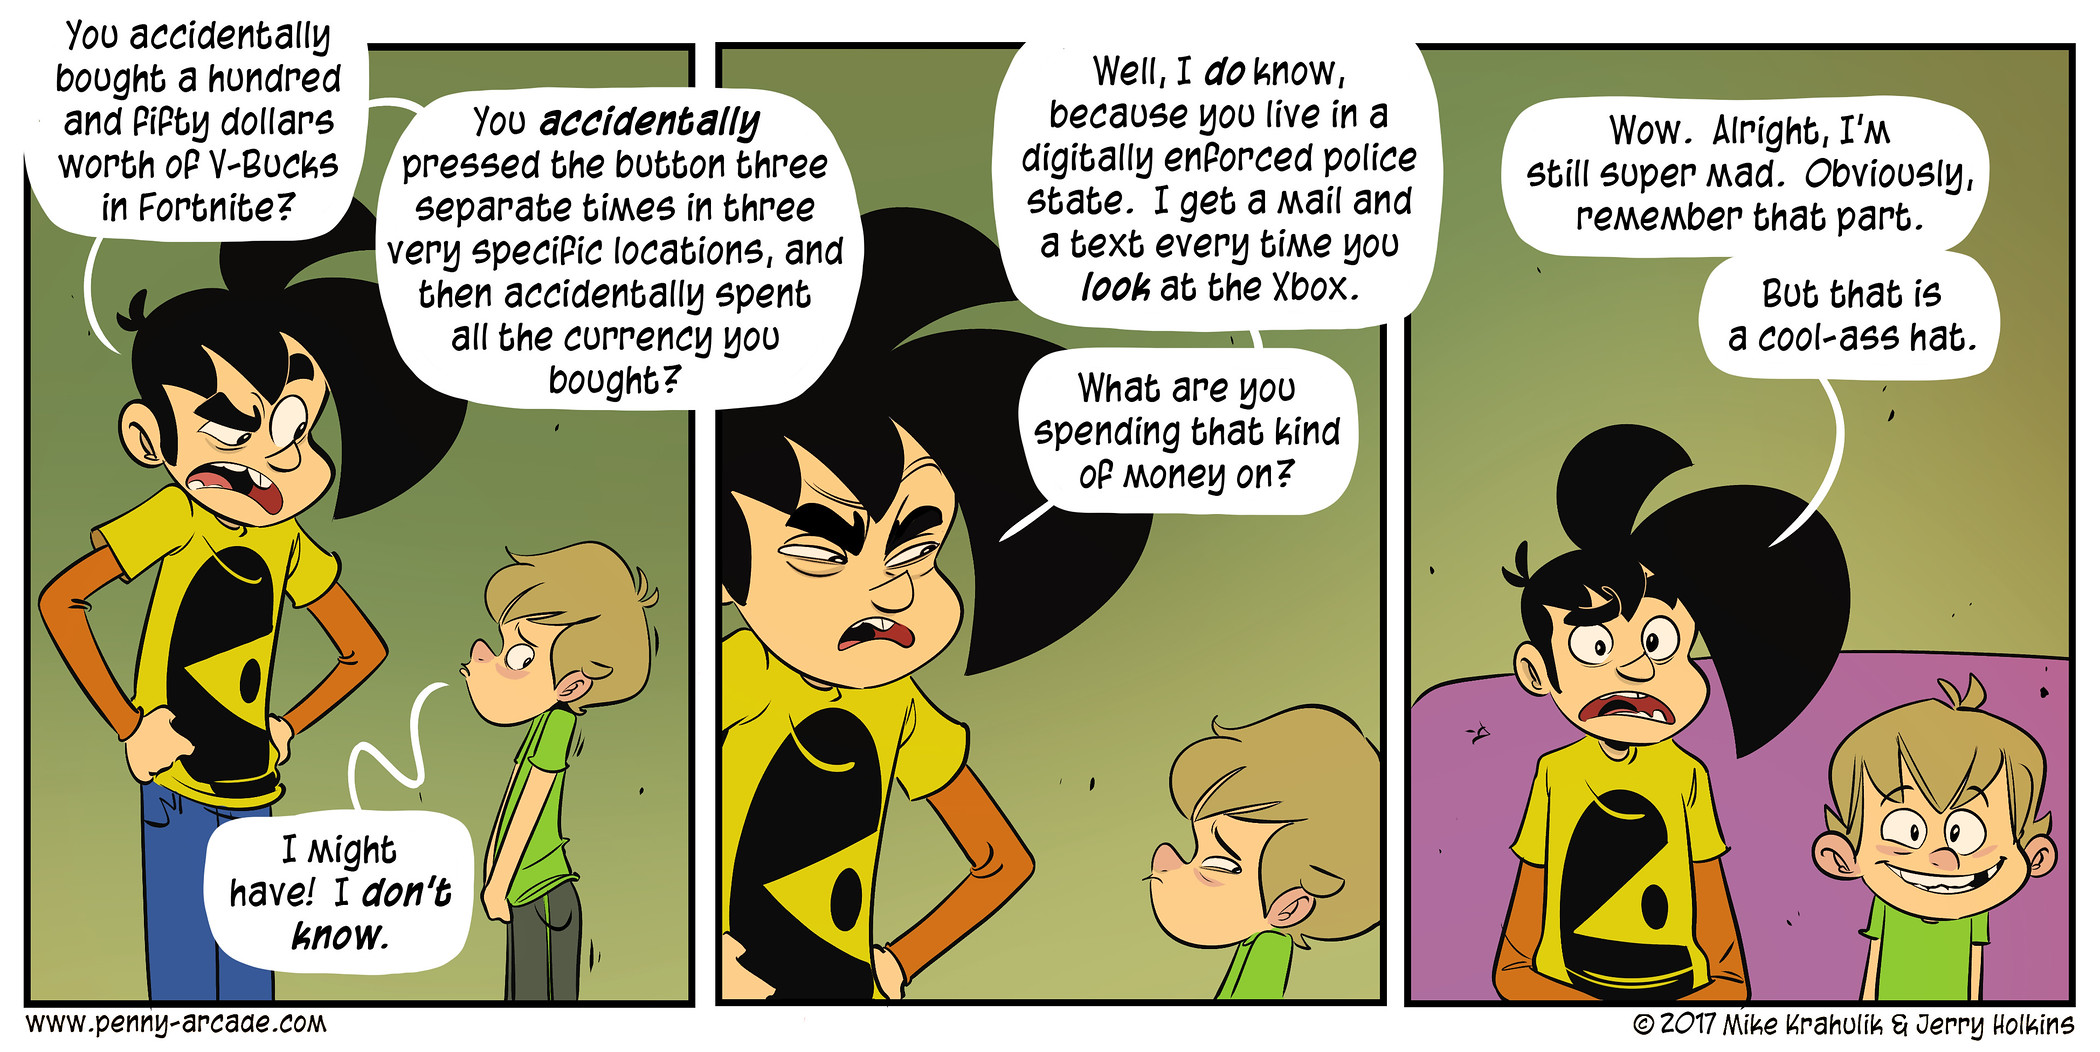 Best value penny arcade know your meme you accidentally bought a hundred and pipty dollars worth op v bucks in fortnite m4hsunfo